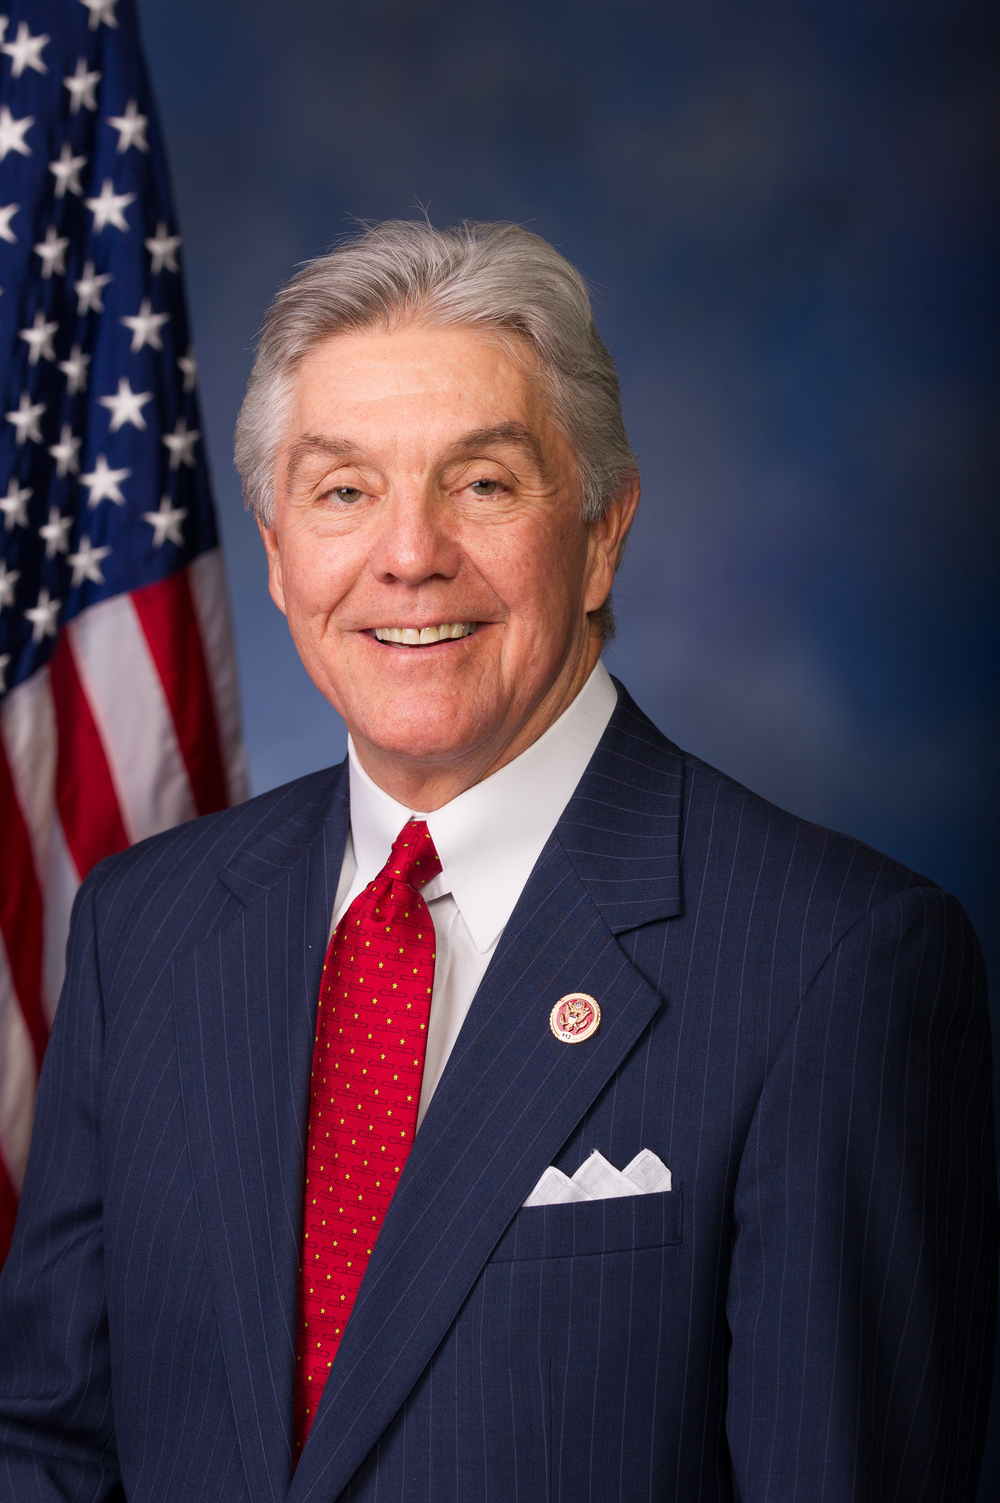 Representative Roger Williams (R-TX-25) Cosponsor of H.R. 525 Cuba Agricultural Exports Act